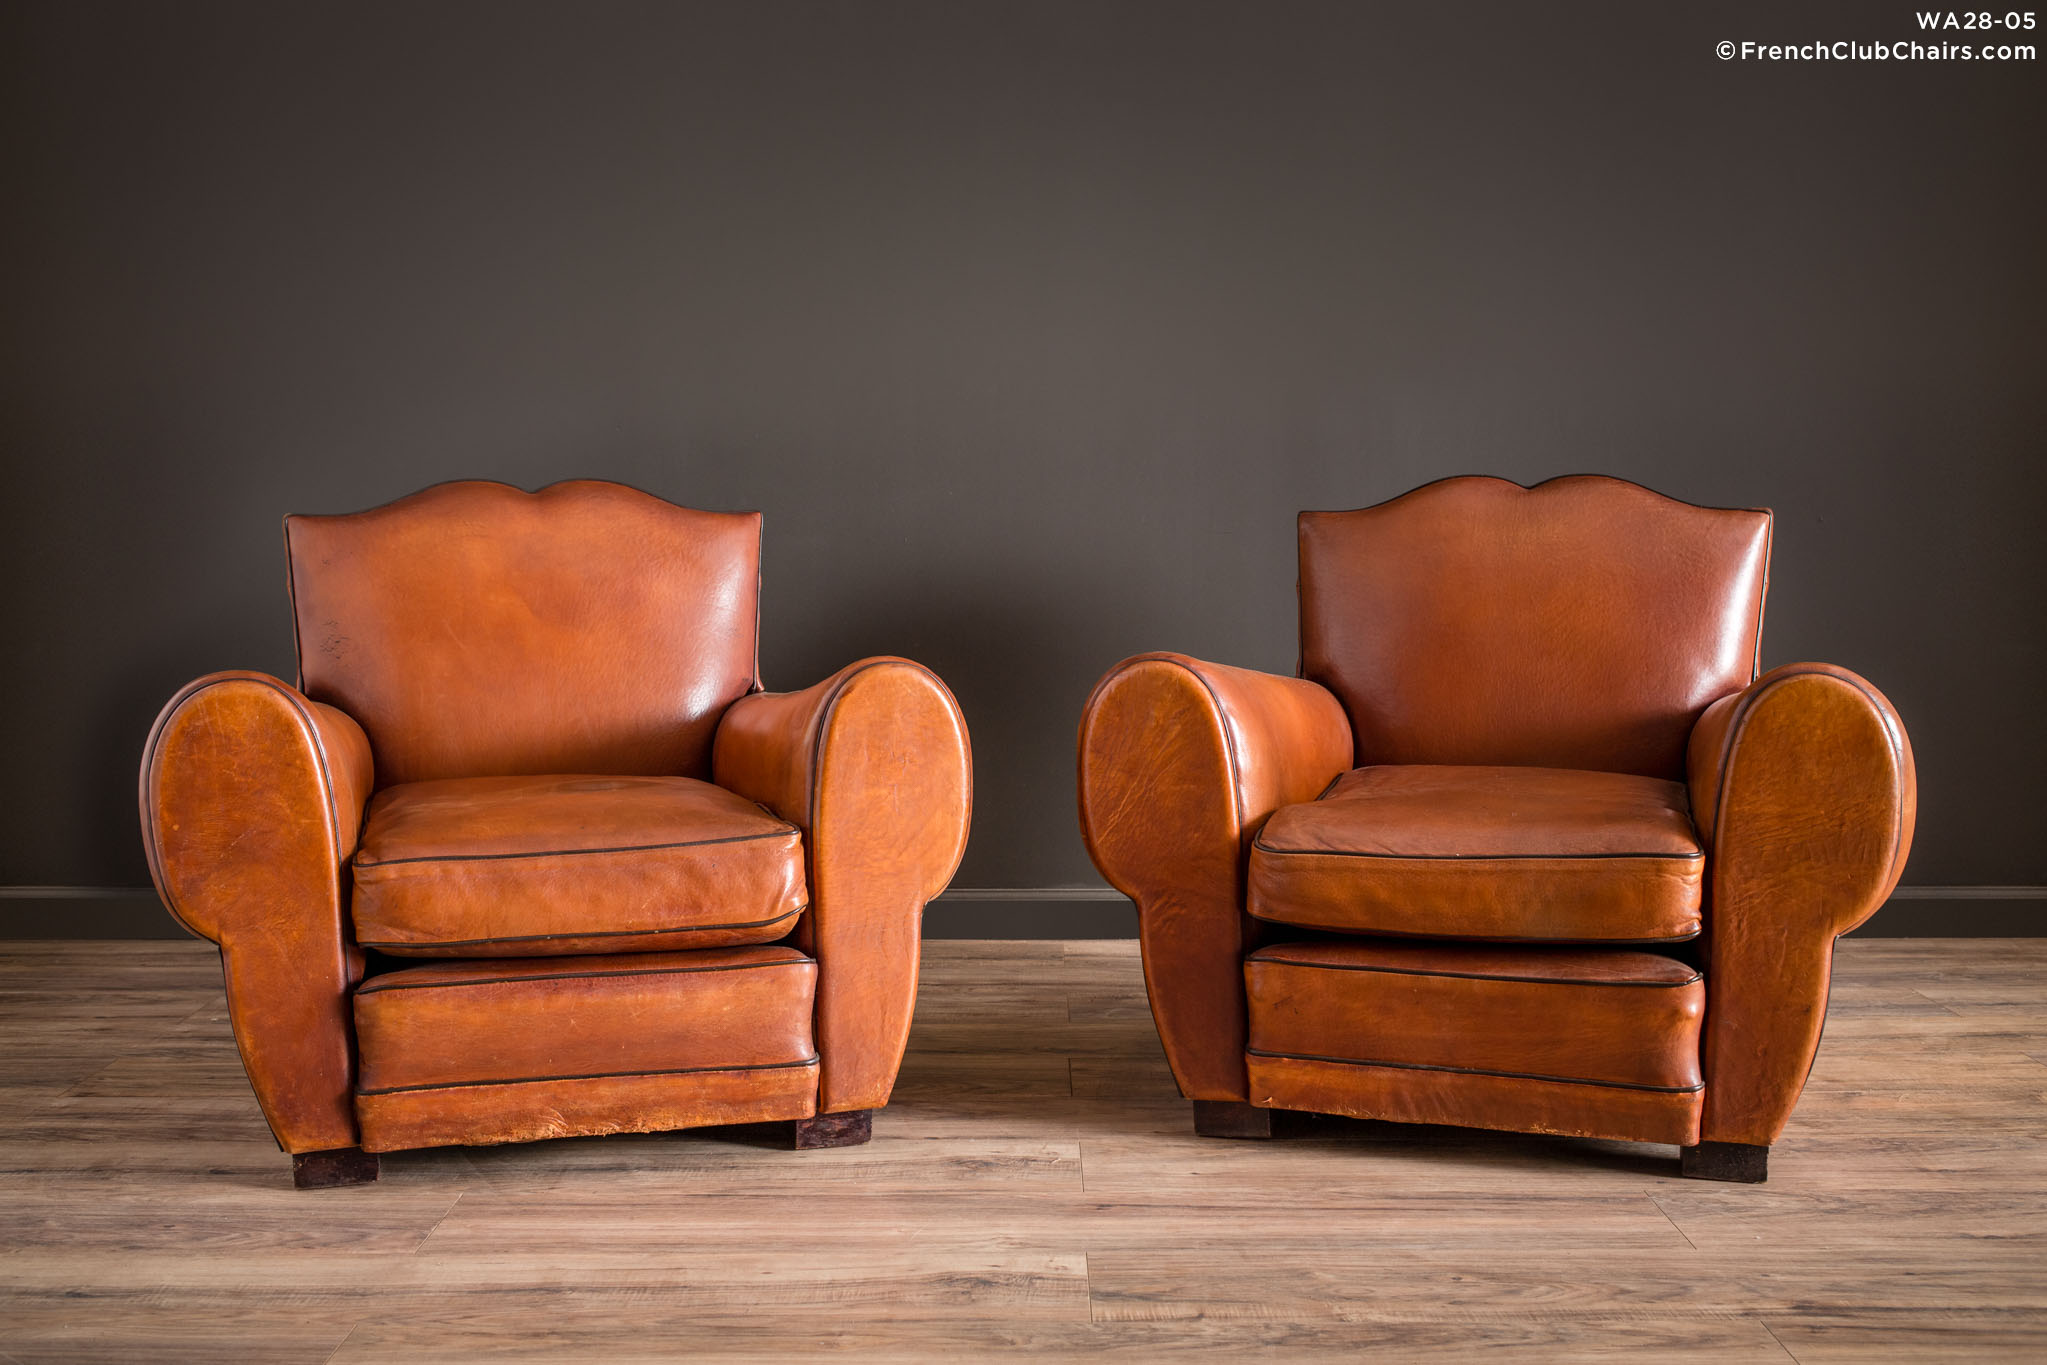 WA_28-05_Berdilt_Mustache_Pair_R_1TQ1-williams-antiks-leather-french-club-chair-wa_fcccom